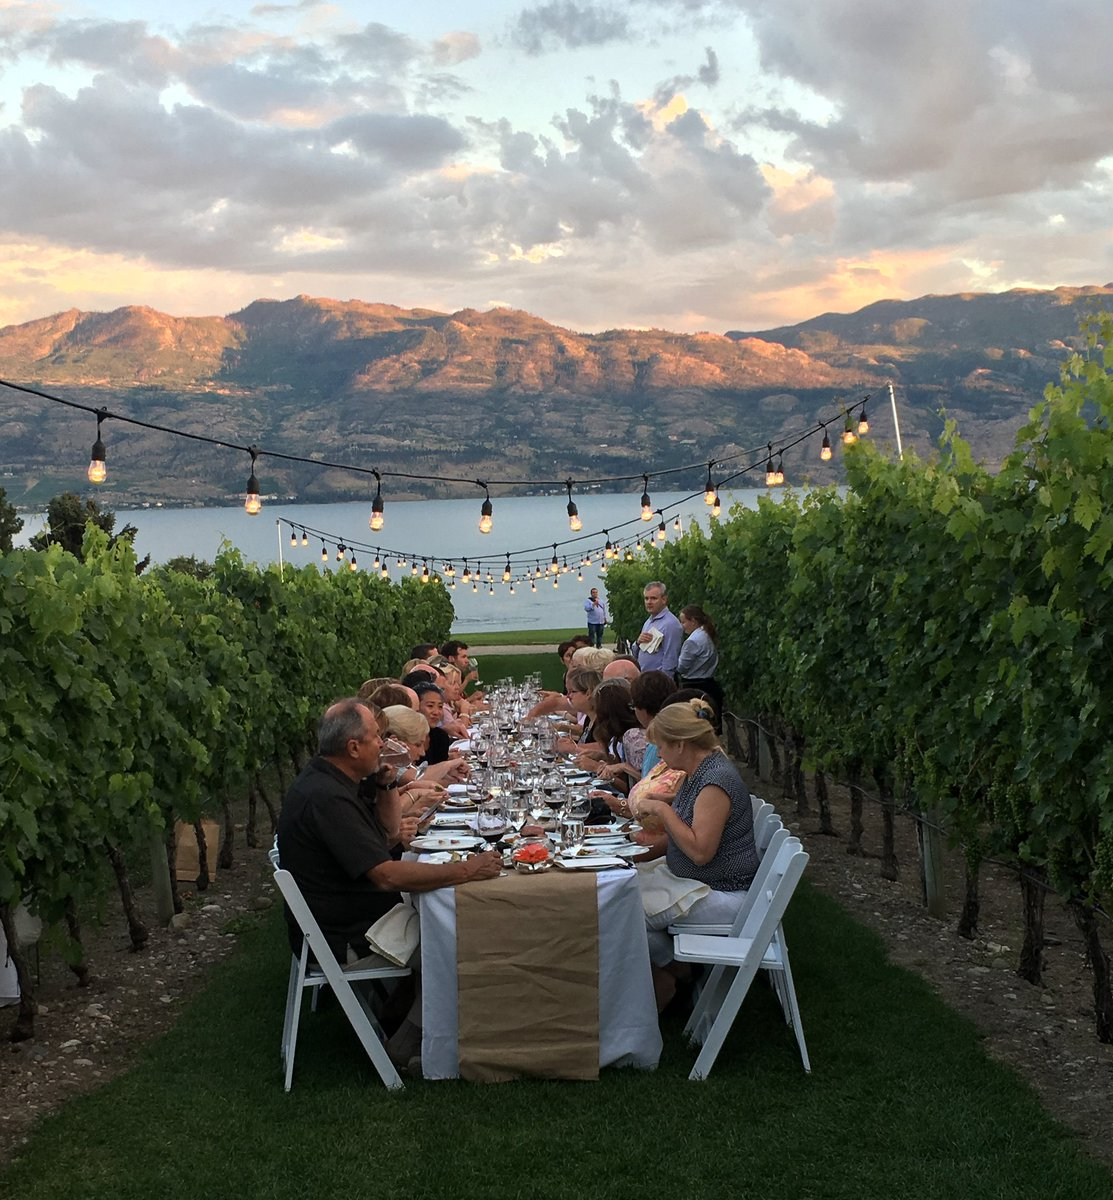 ONLY 6 SEATS LEFT!! Aug 31 Dinner in the Vineyard is the only night in the series with any seats left. 250-769-2518 https://t.co/h0QGJIup6r